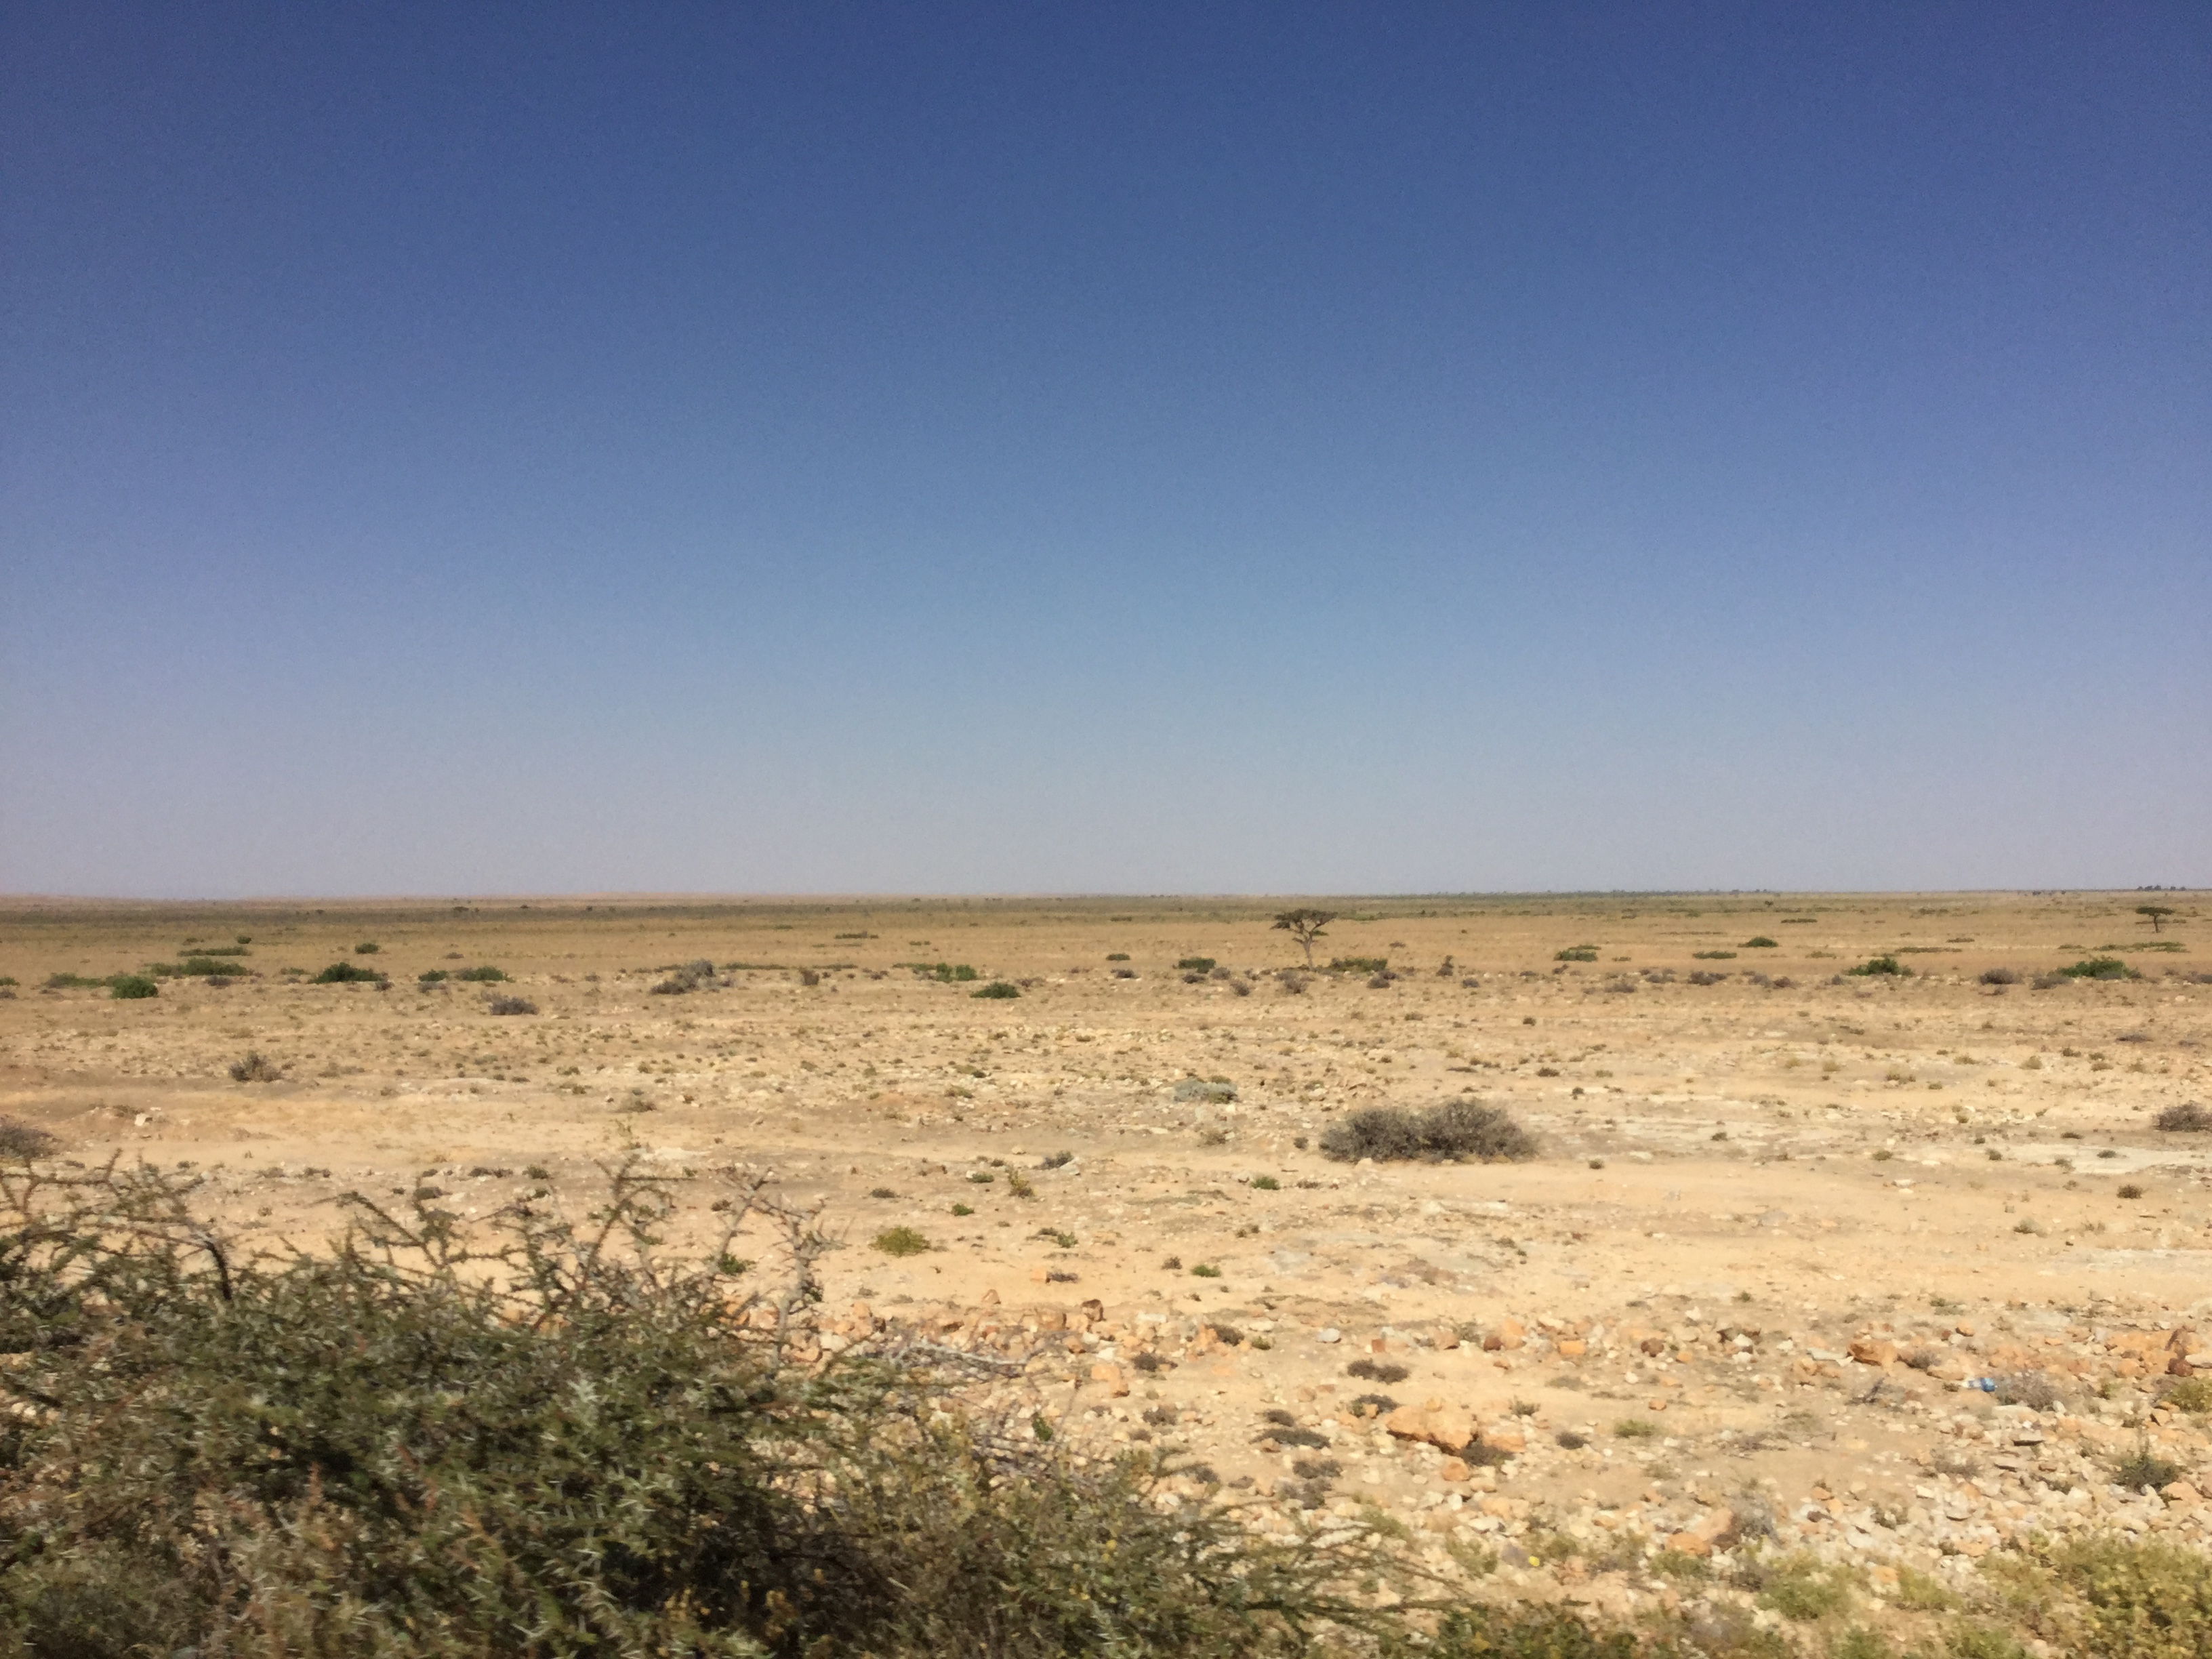 Barren landscape in Somaliland on the road to Laas Caanood